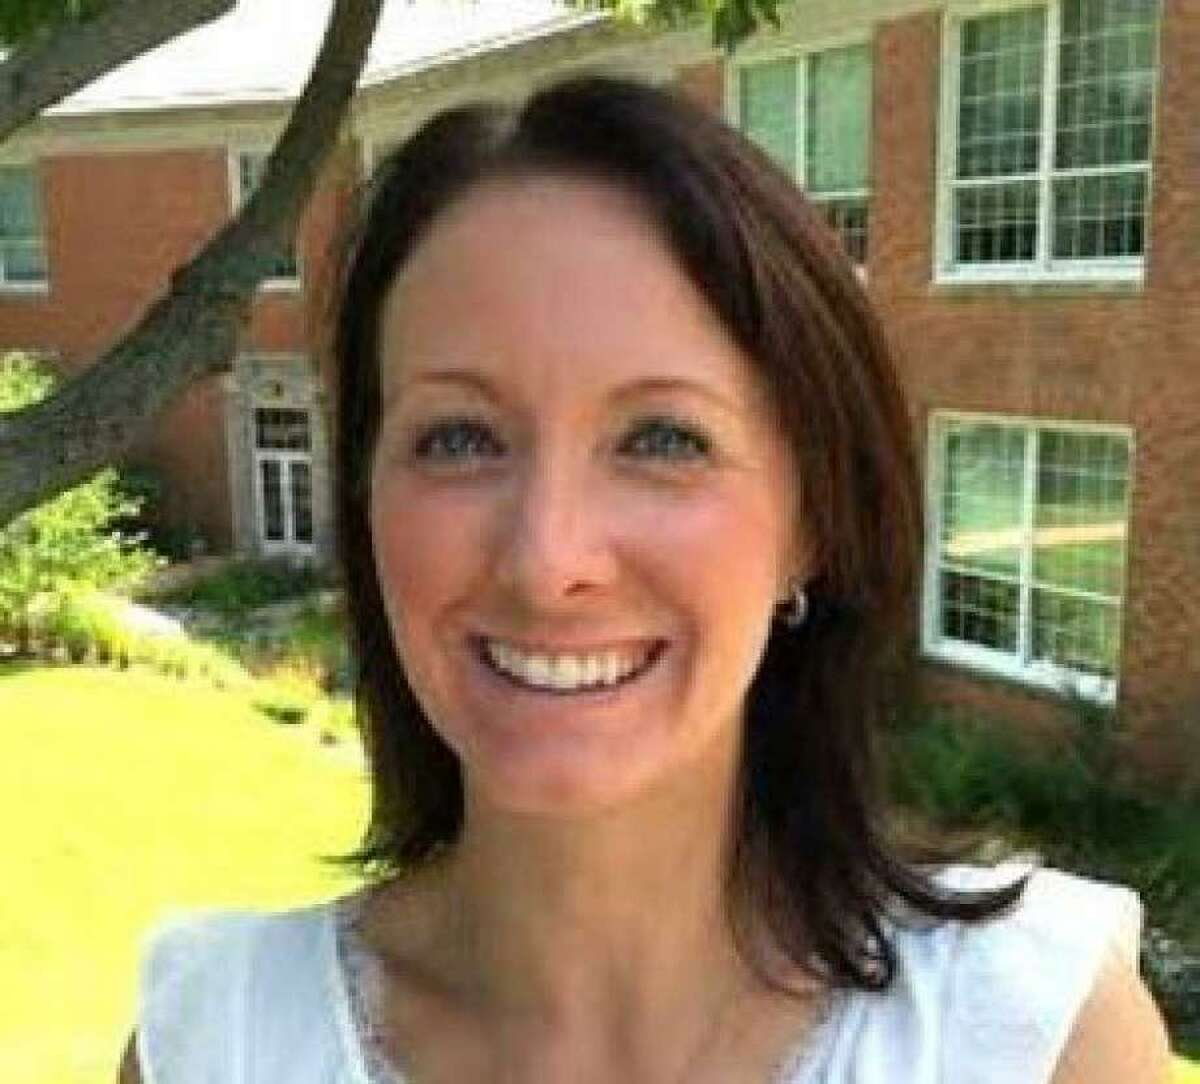 Amy Fedigan, Milord Assistant Superintendent of Schools 2019 salary: $174,909